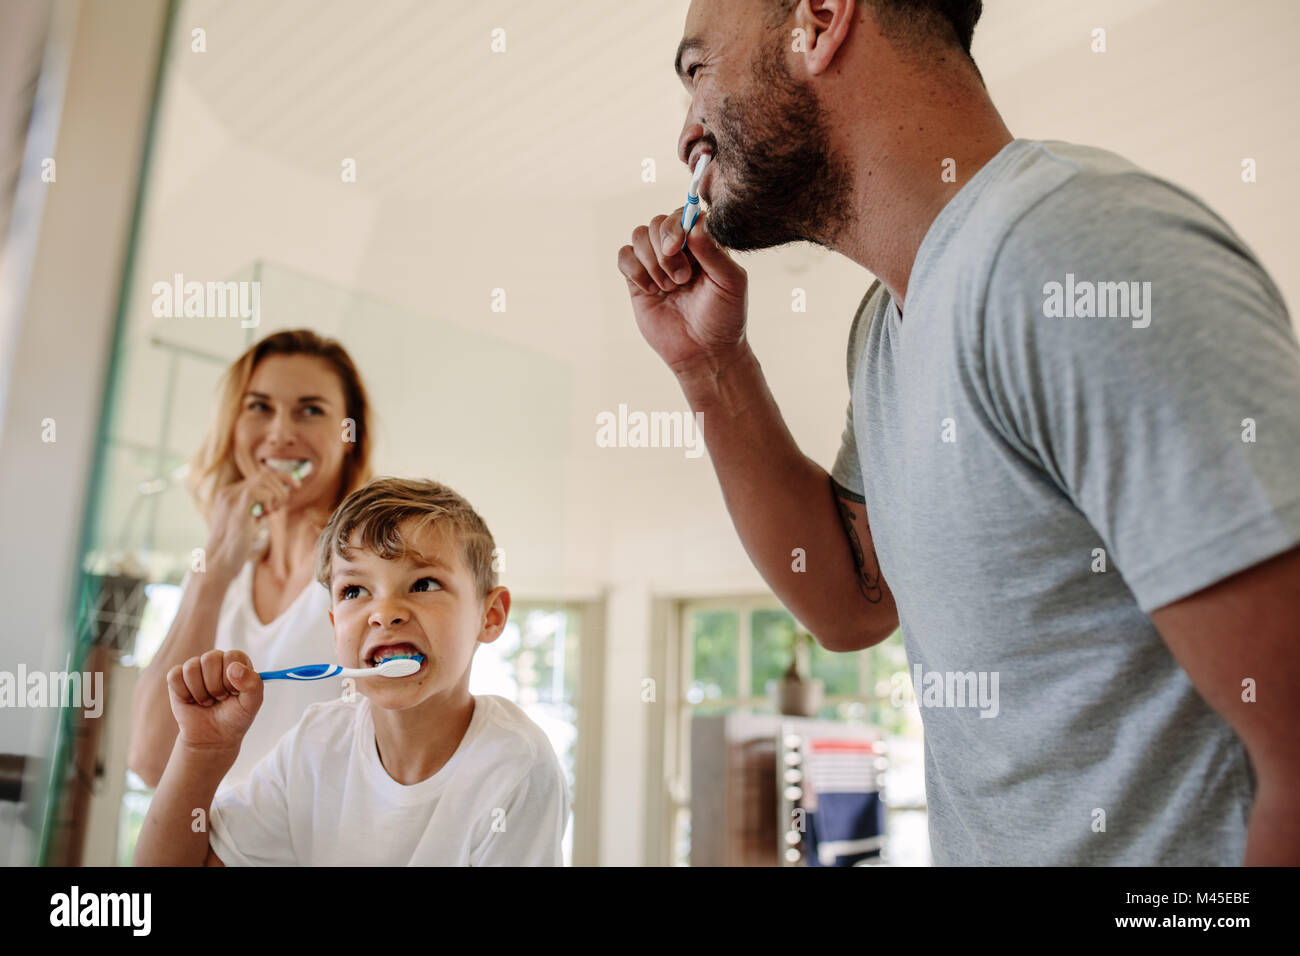 Cute little boy brushing teeth with his father and mother in bathroom. Young family brushing teeth together in bathroom. - Stock Image